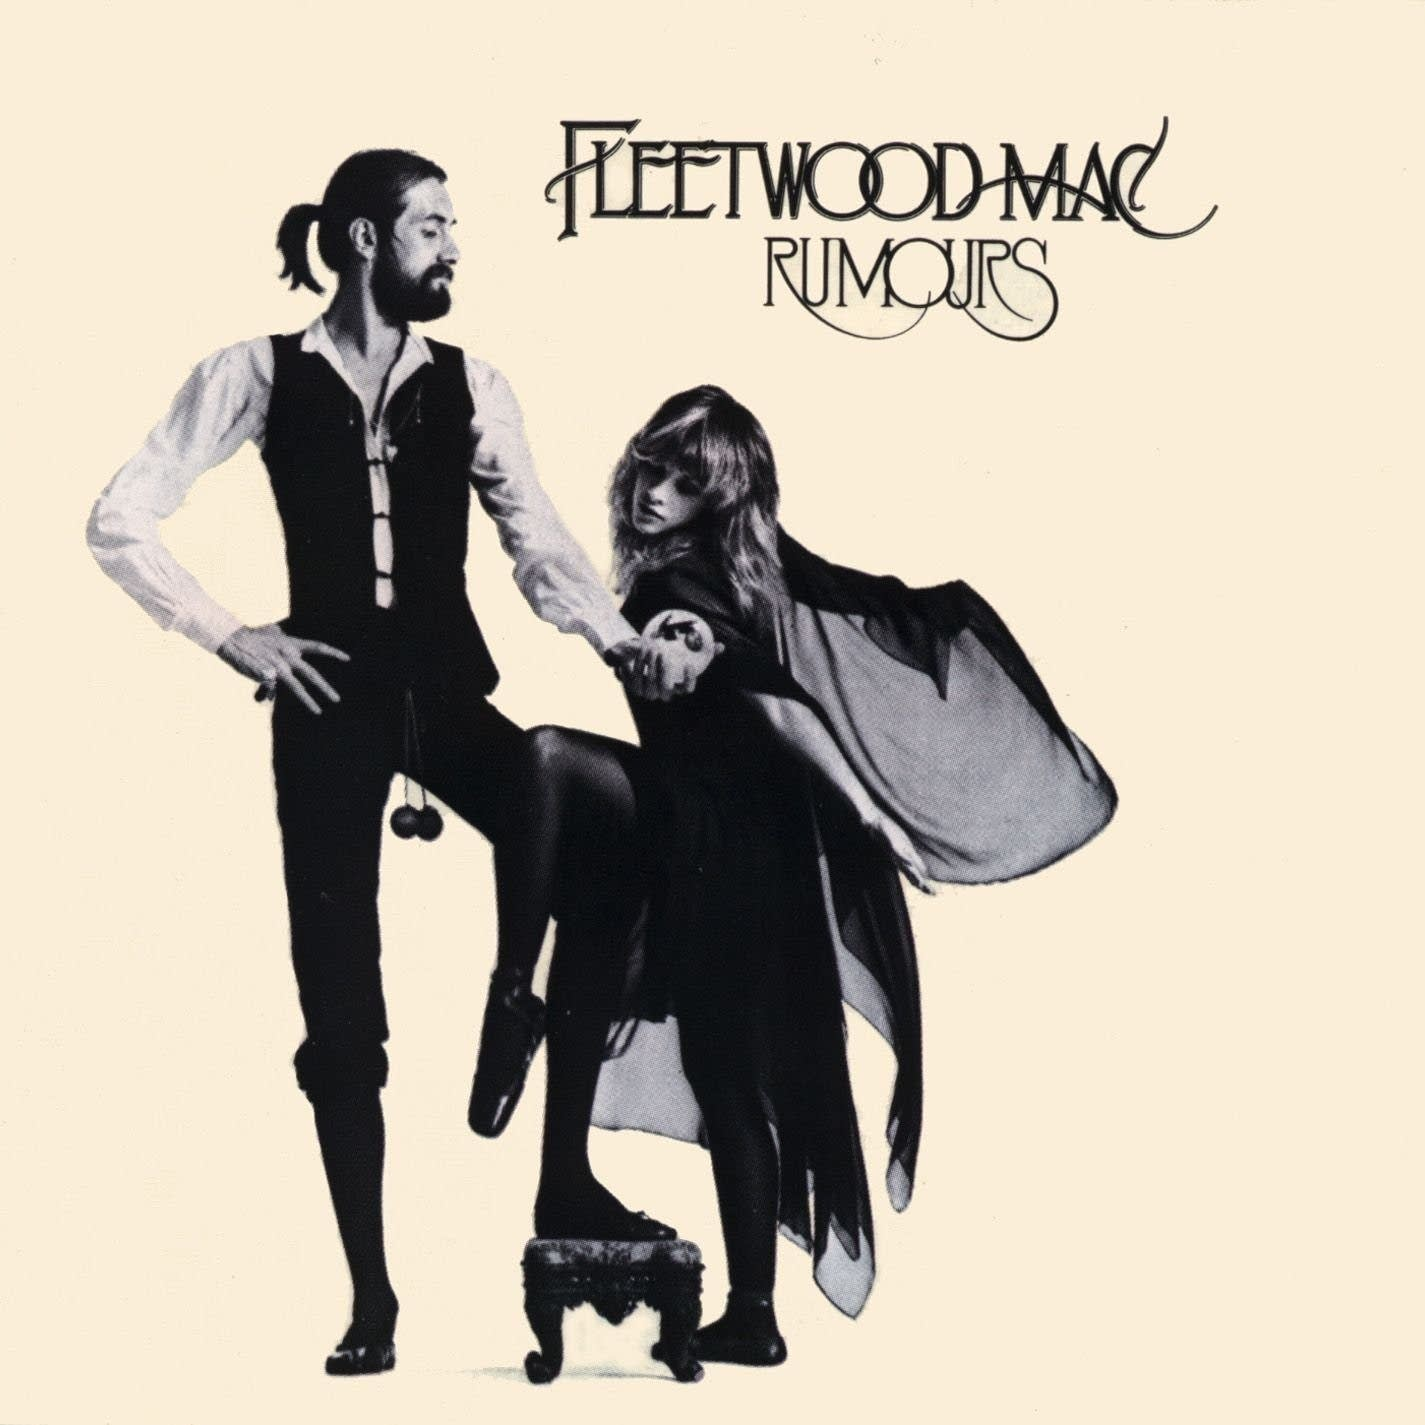 Cover art for Fleetwood Mac's 'Rumours.'